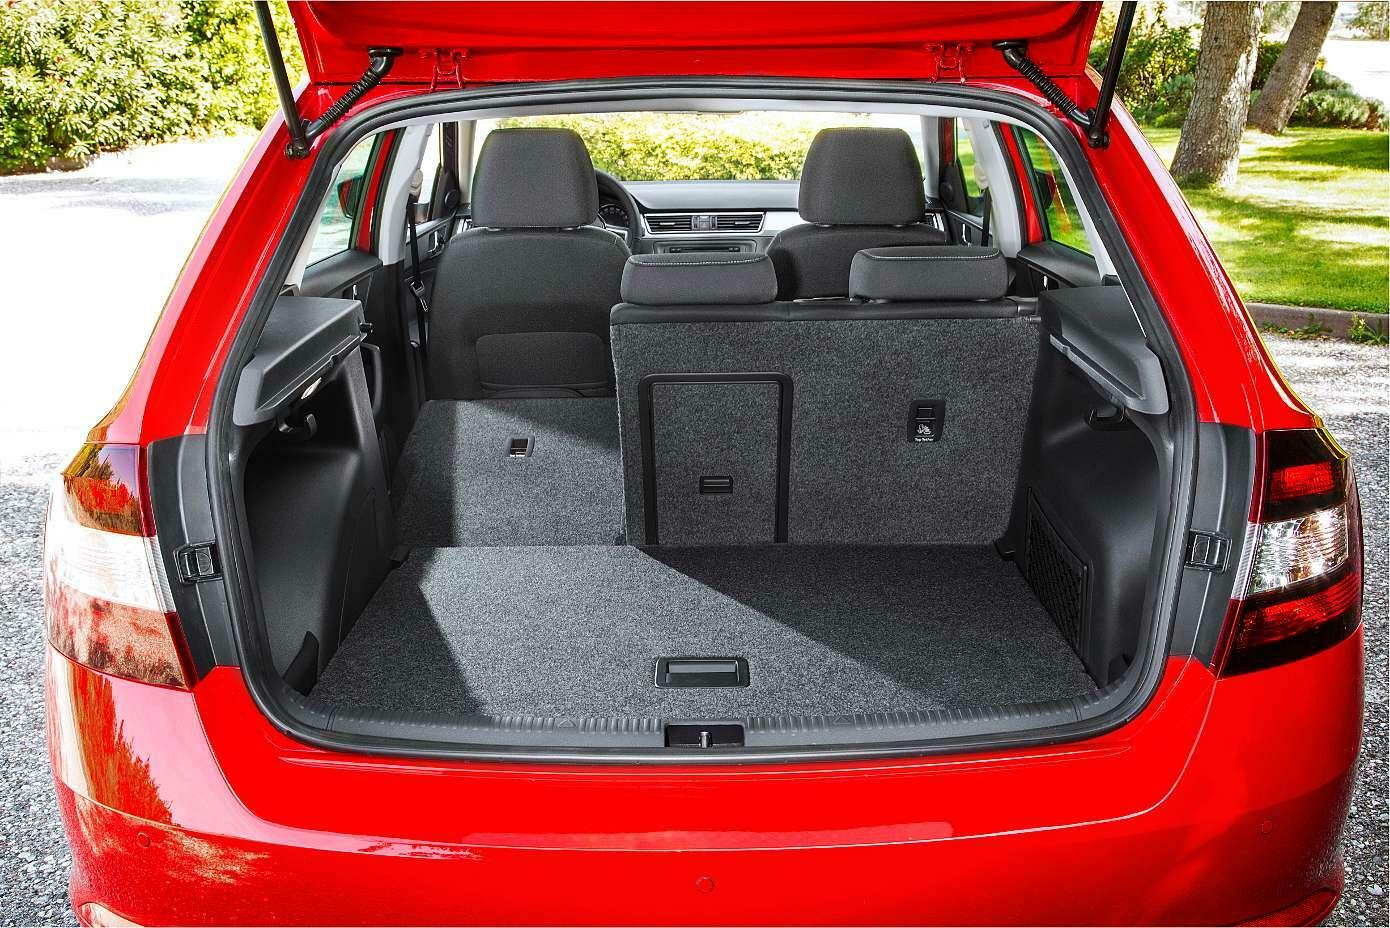 vorstellung skoda rapid spaceback willkommen im golf club auto tagesspiegel. Black Bedroom Furniture Sets. Home Design Ideas